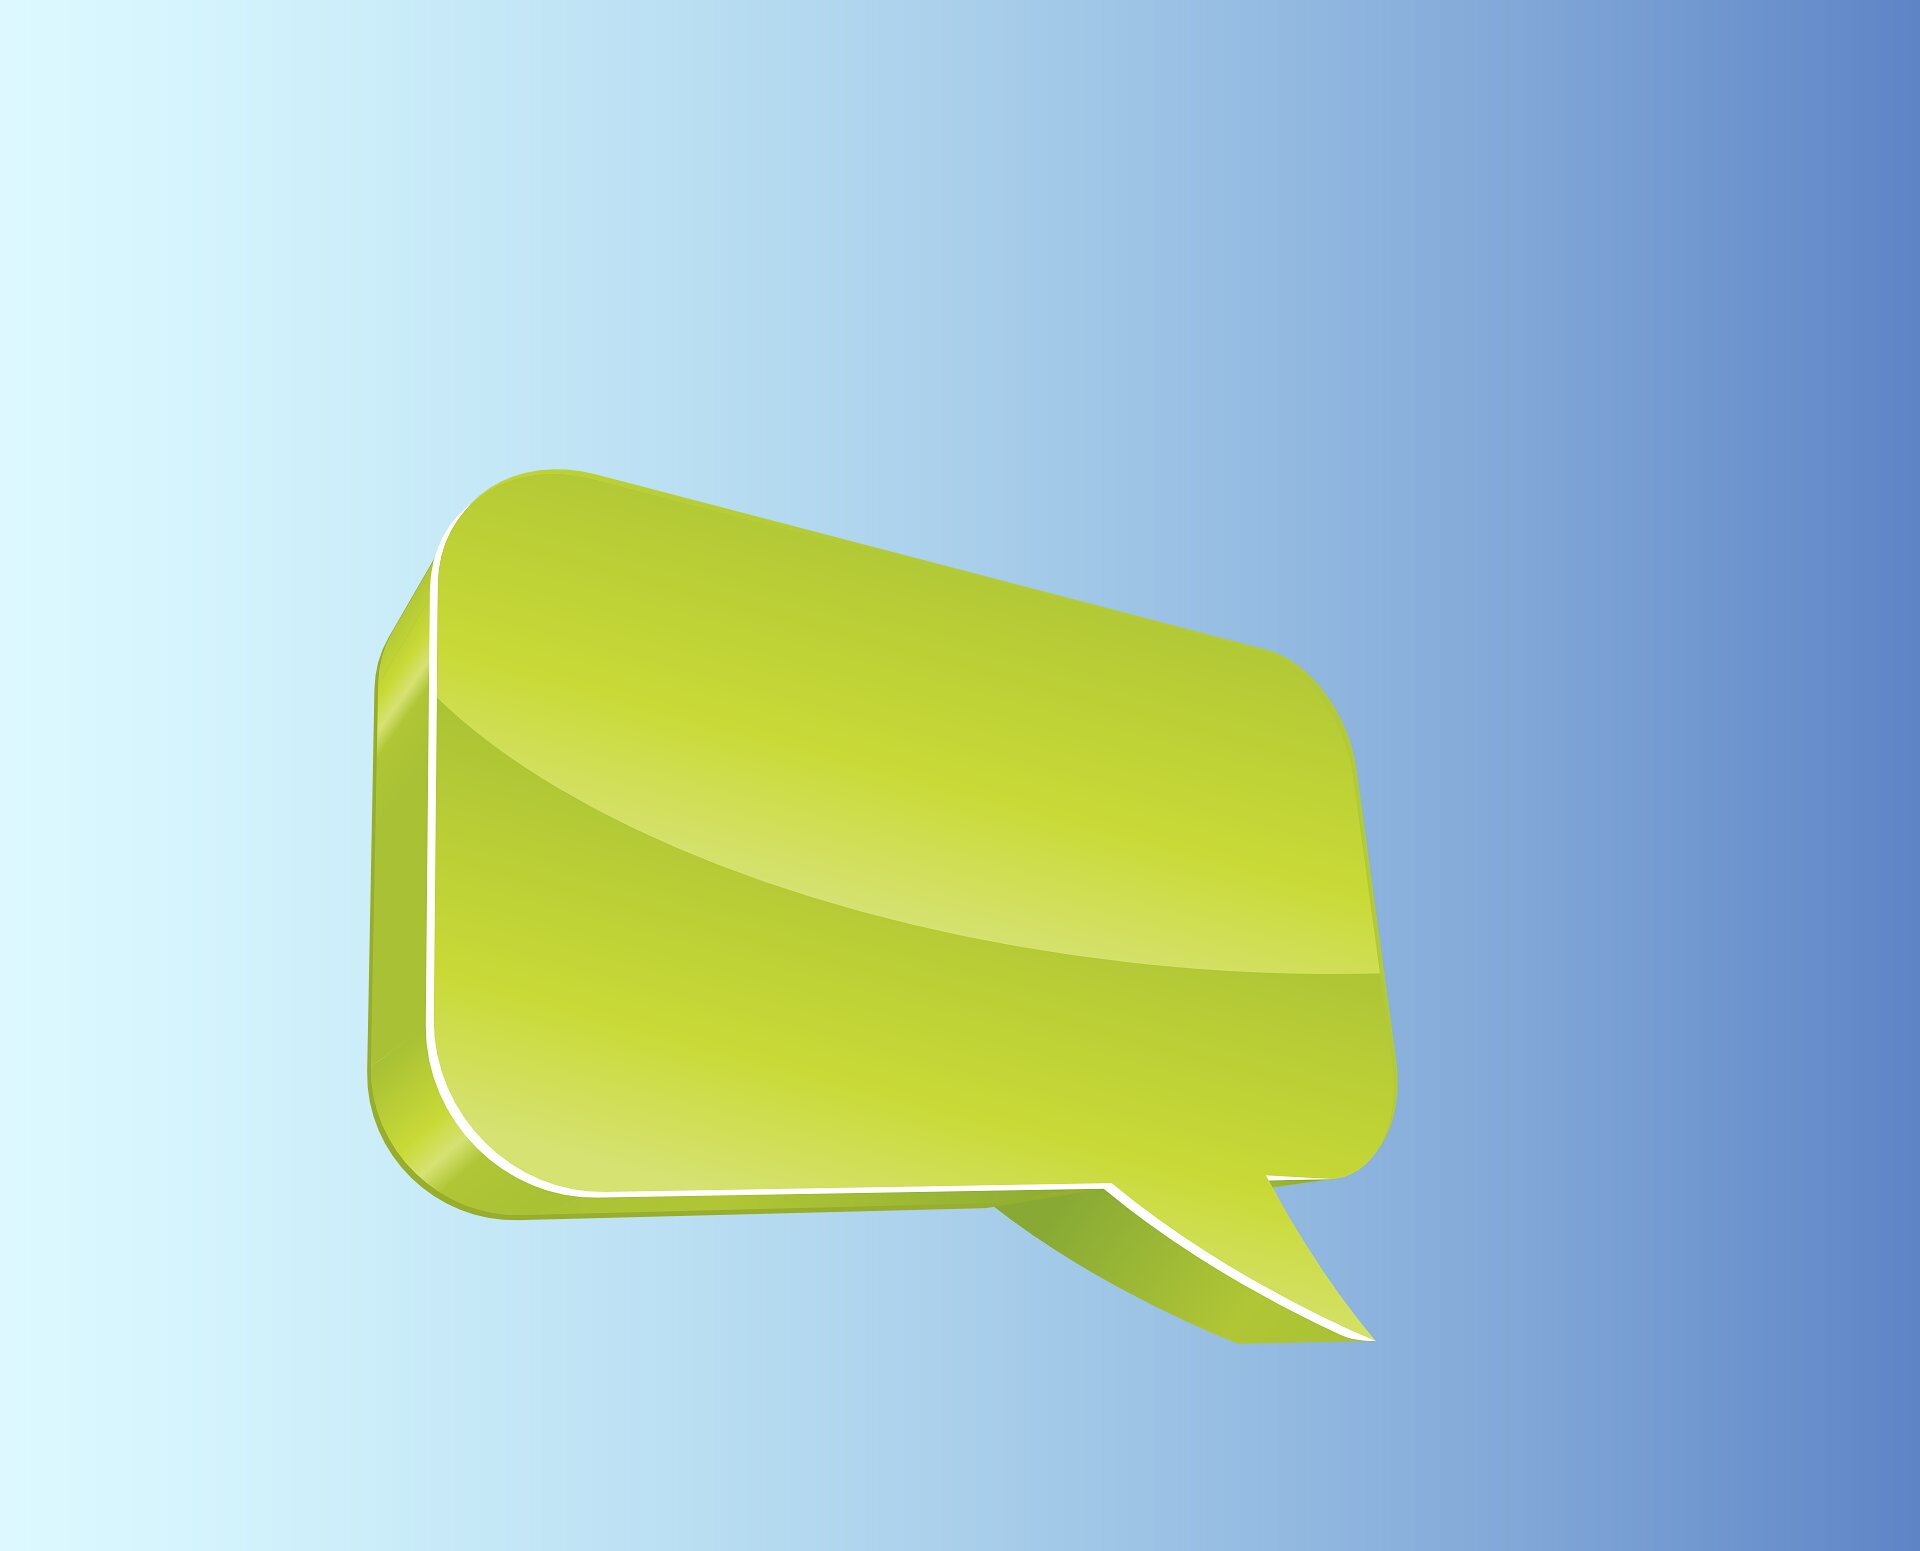 New Research Shows Live Chats Can Increase Sales by Nearly 16%